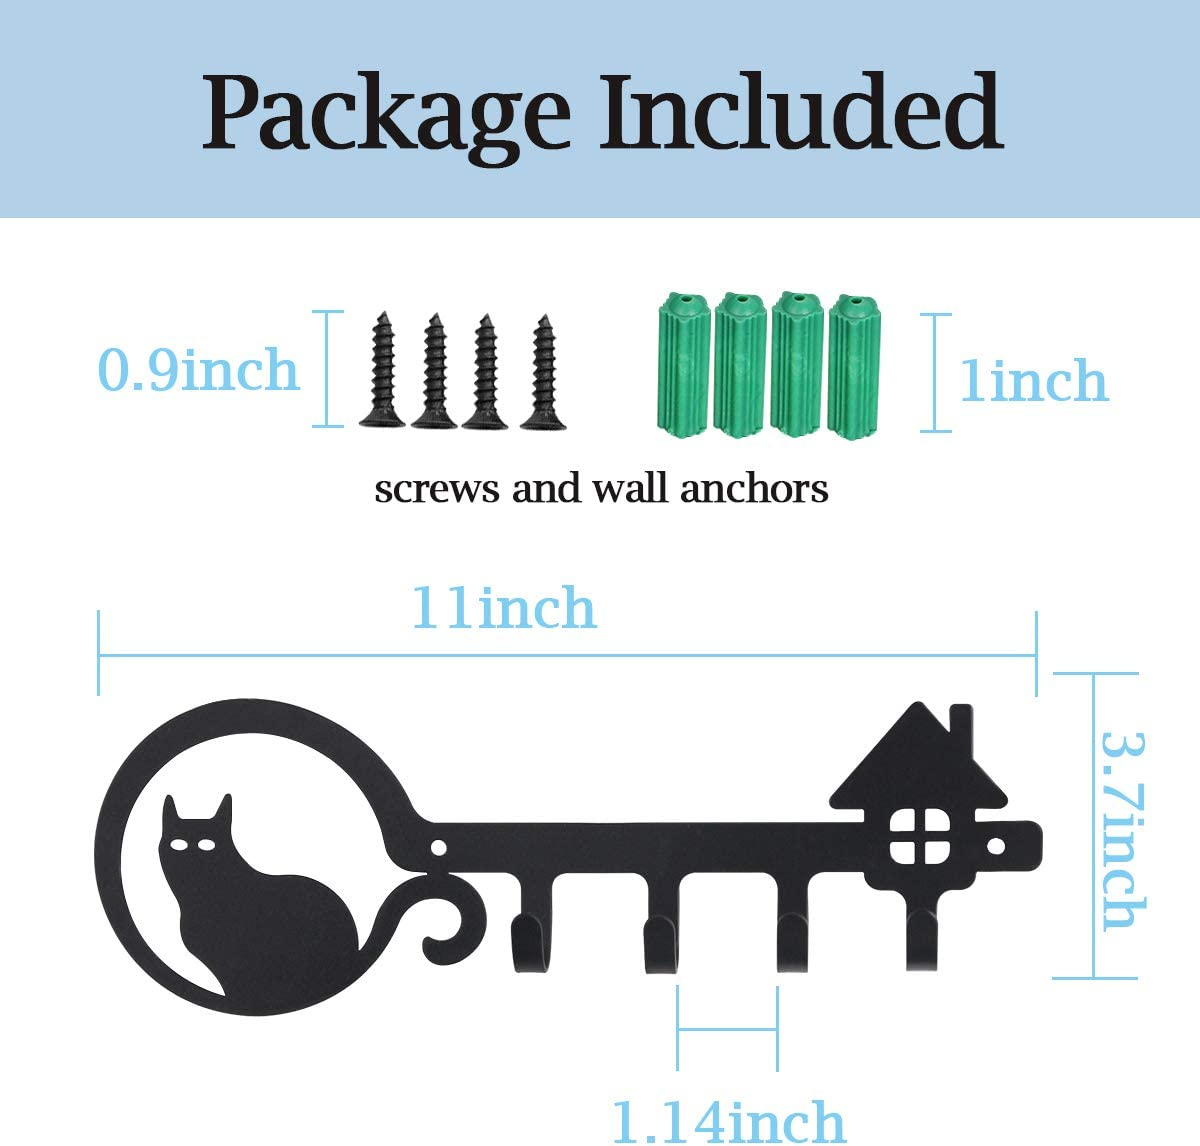 11 inch with 4 Key Hooks Organizer for car or House Keys Key Rack with Screws and Anchors Cat and Home, Black UptoBillions Decorative Wall Mounted Iron Key Holder